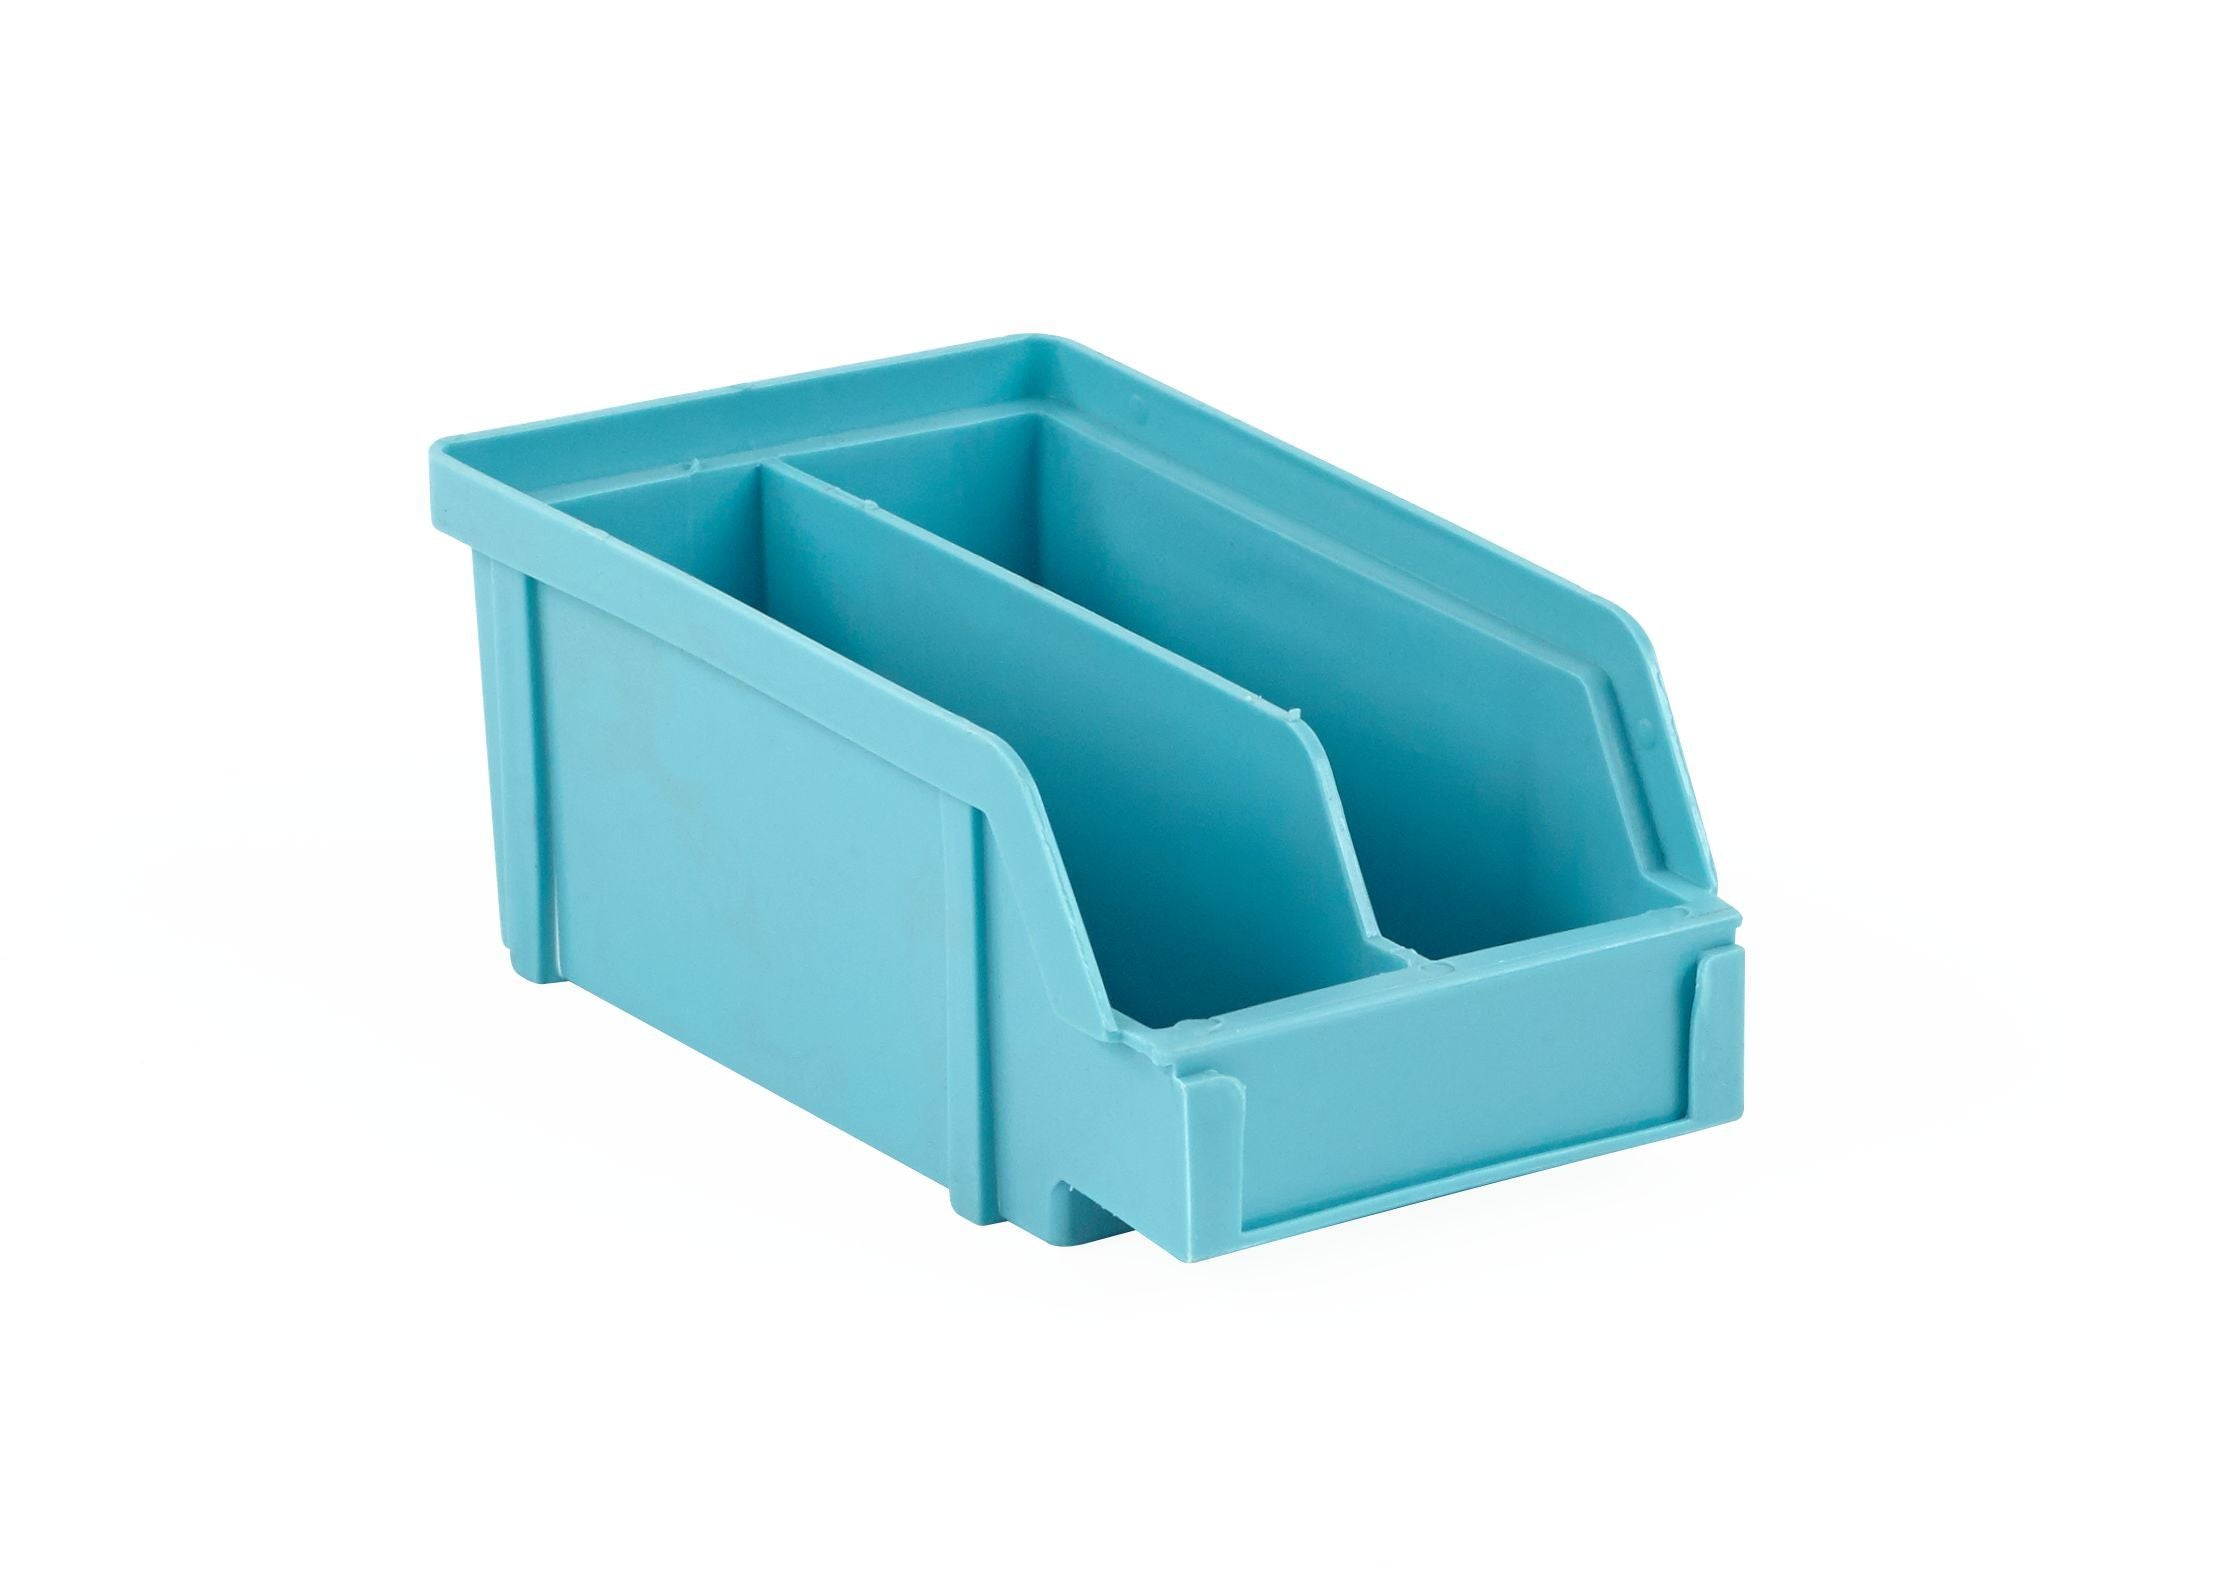 PB41-F | 13X11X6 PlastiBox Container | Pack of 12